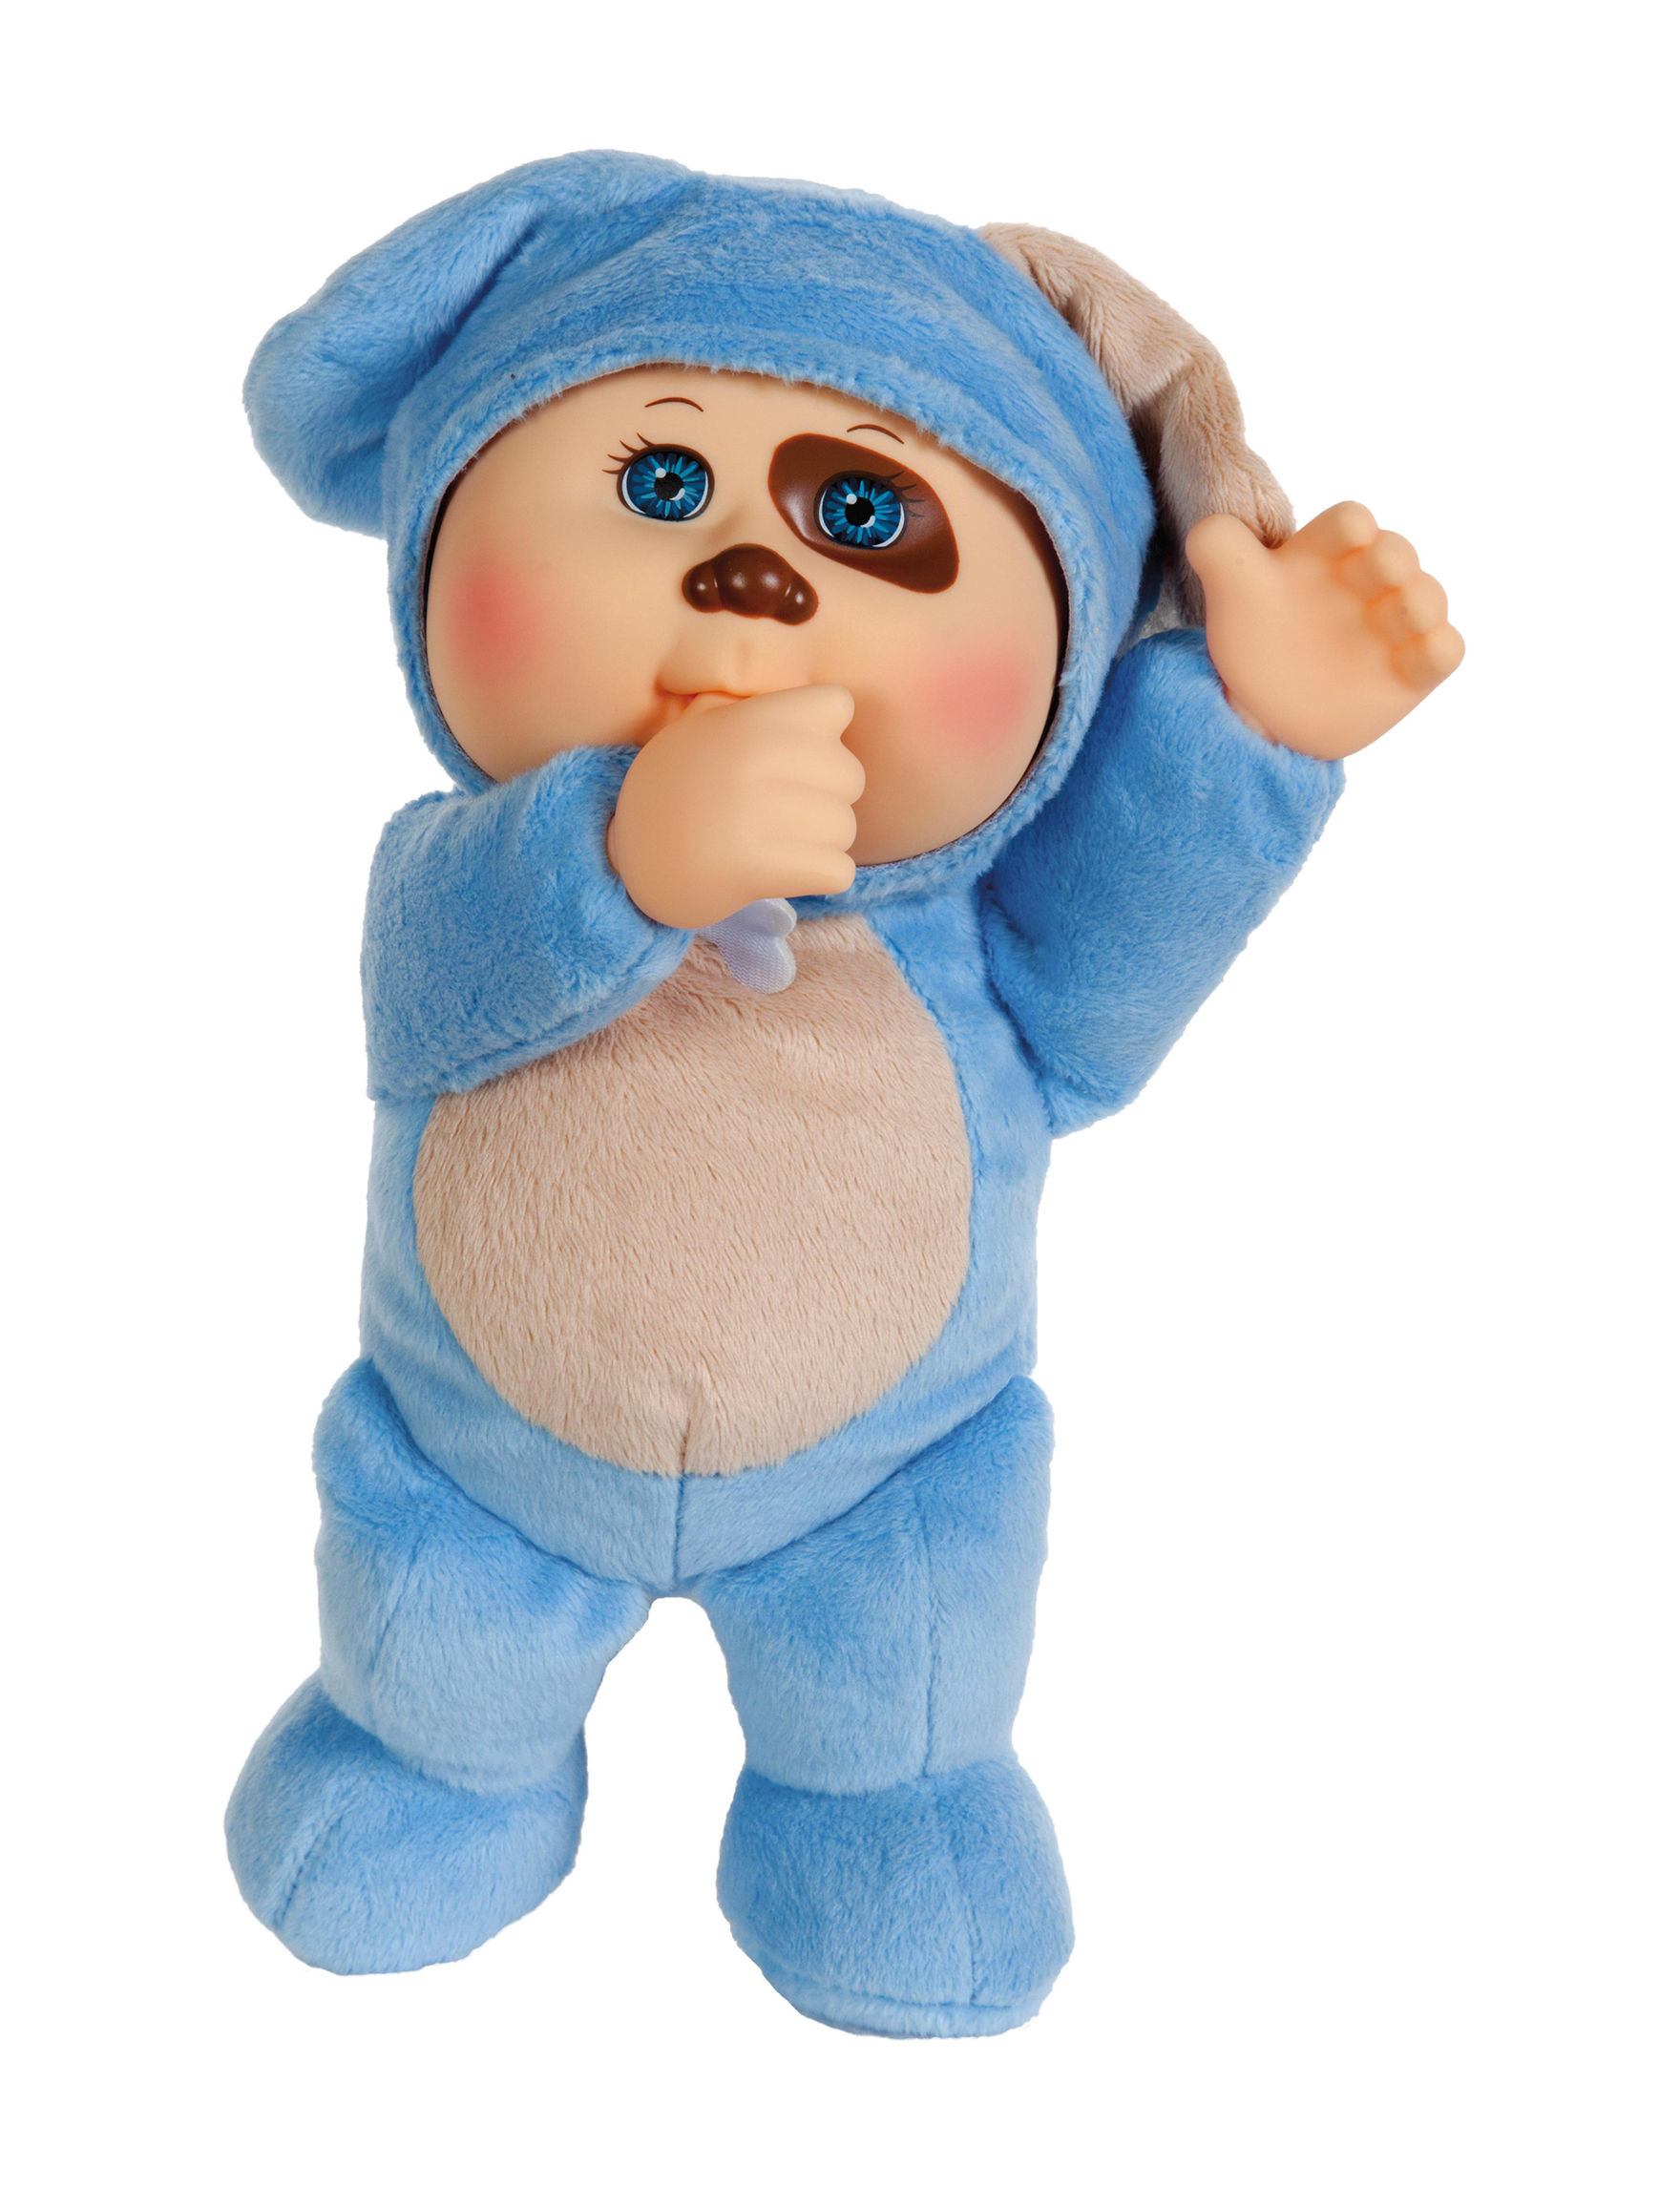 Cabbage Patch Kid Blue